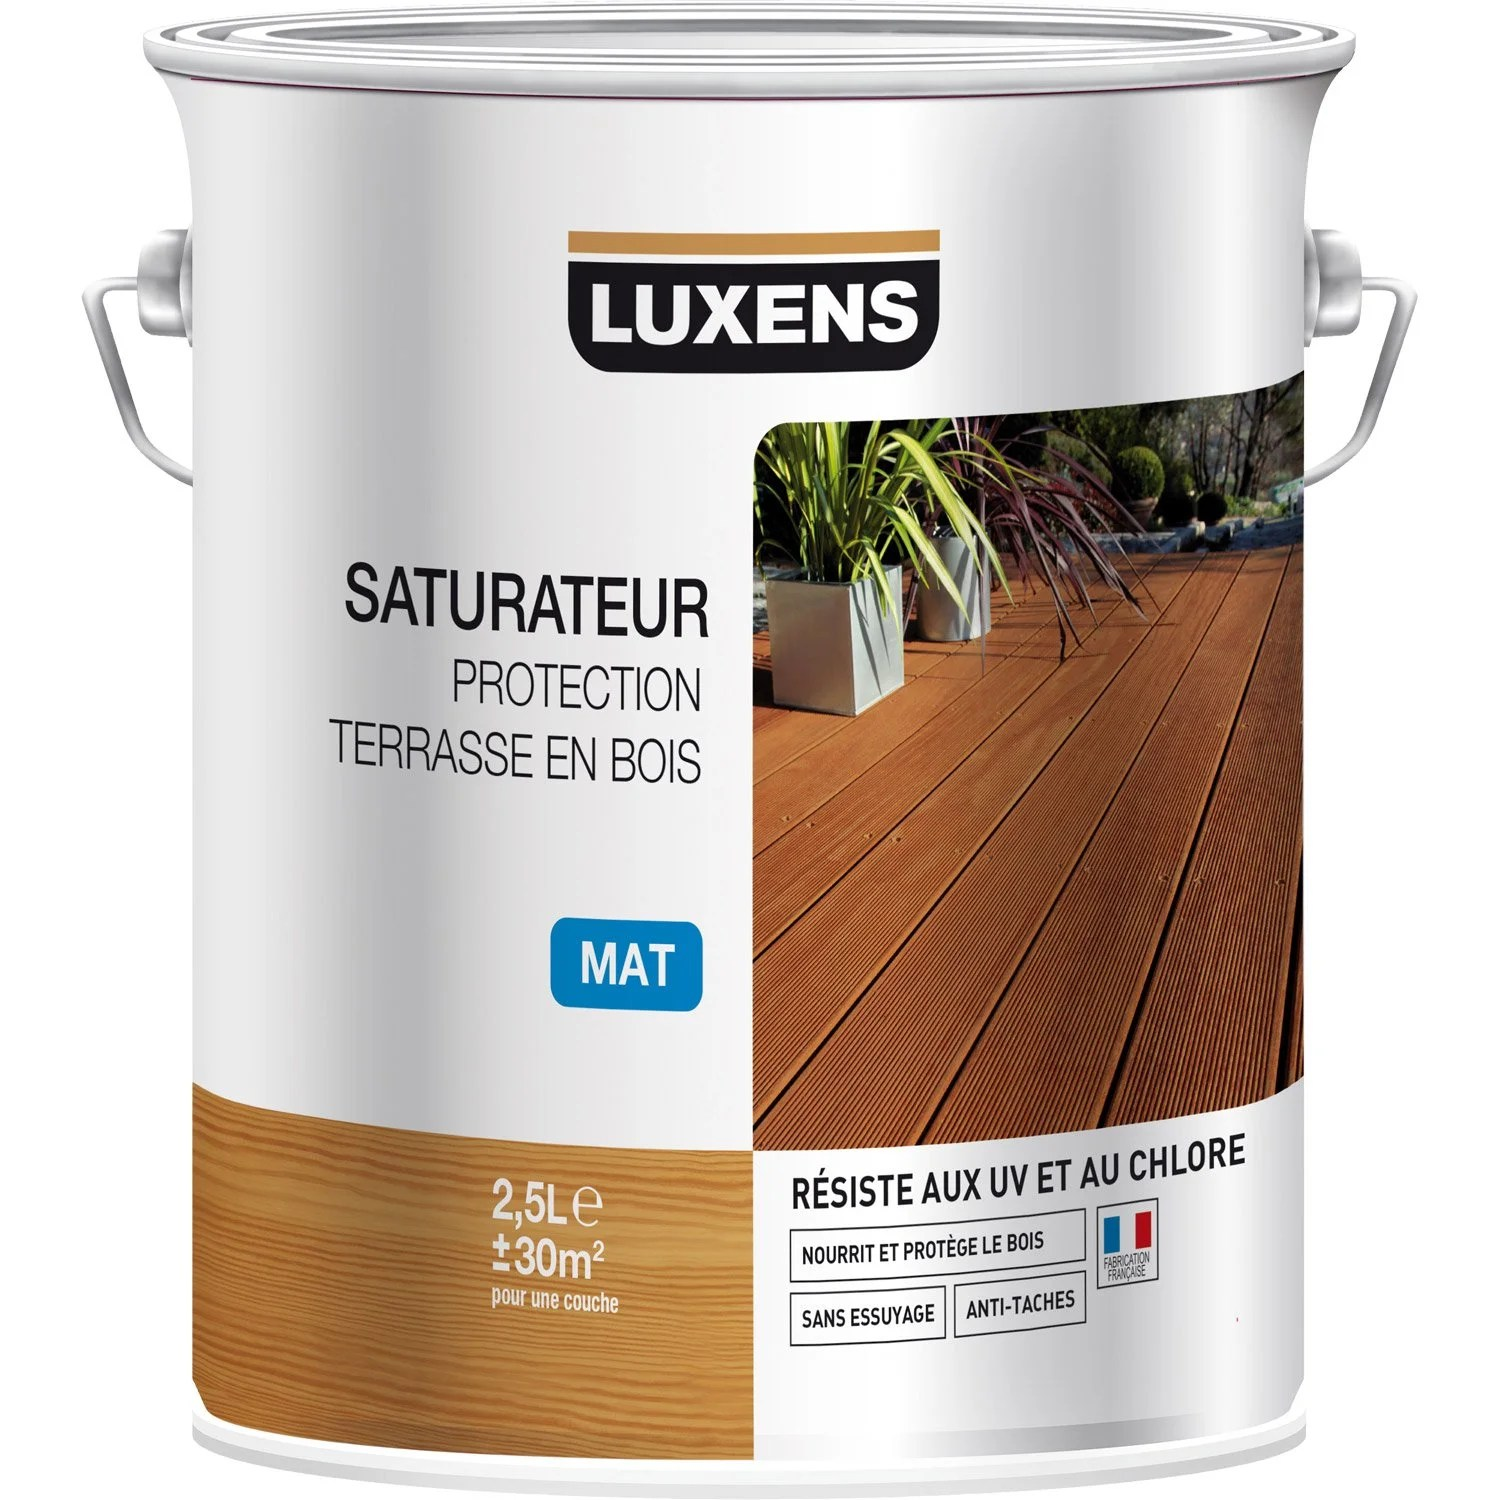 Saturateur Terrasse Bois Leroy Merlin Saturateur Luxens Saturateur Protection Terrasse En Bois 2